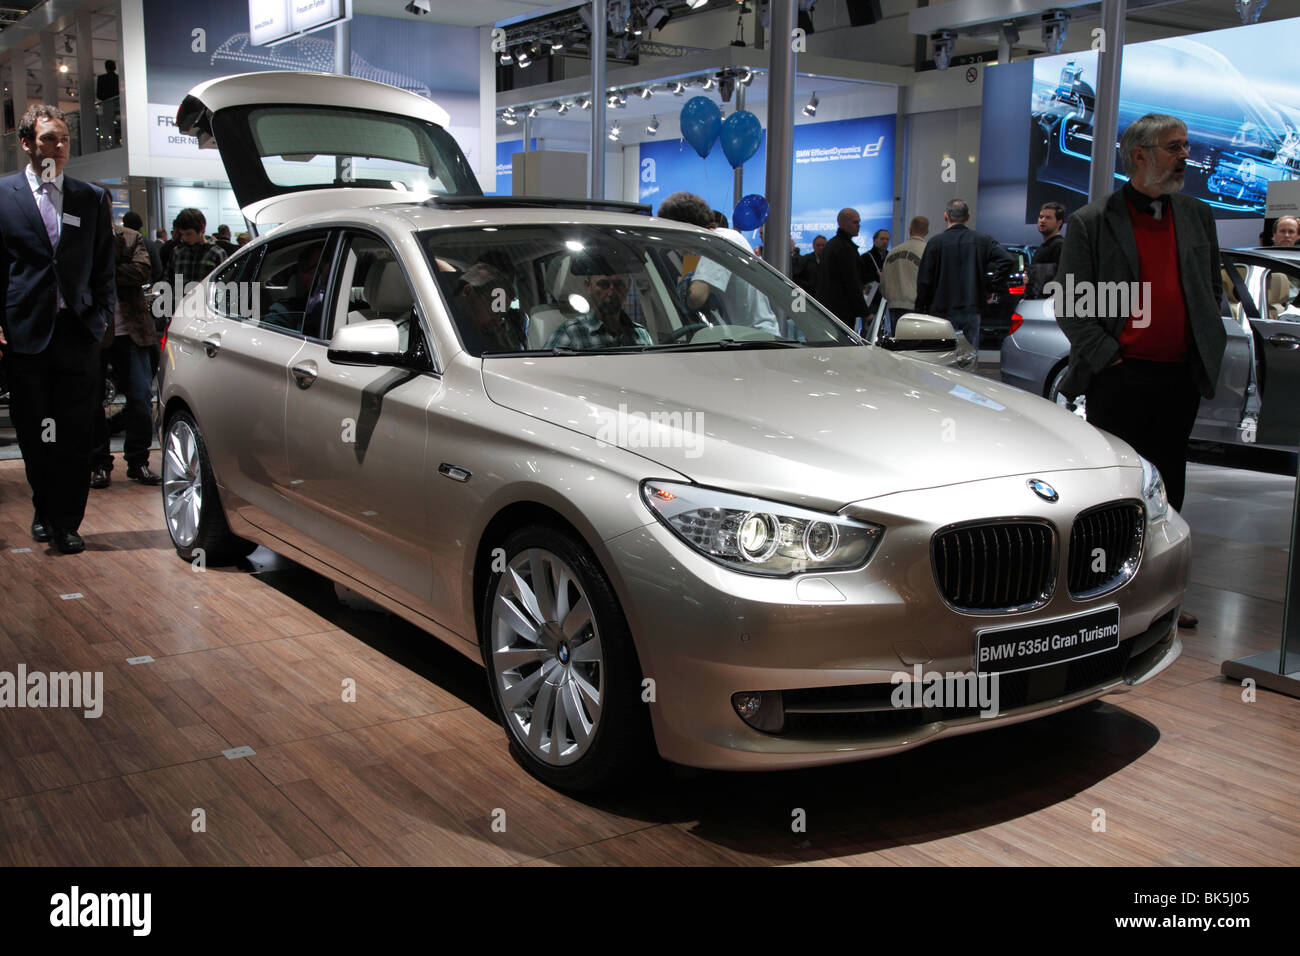 BMW 535d Gran Turismo at the Auto Mobil International (AMI); Motor Show 2010 in Leipzig, Germany - Stock Image